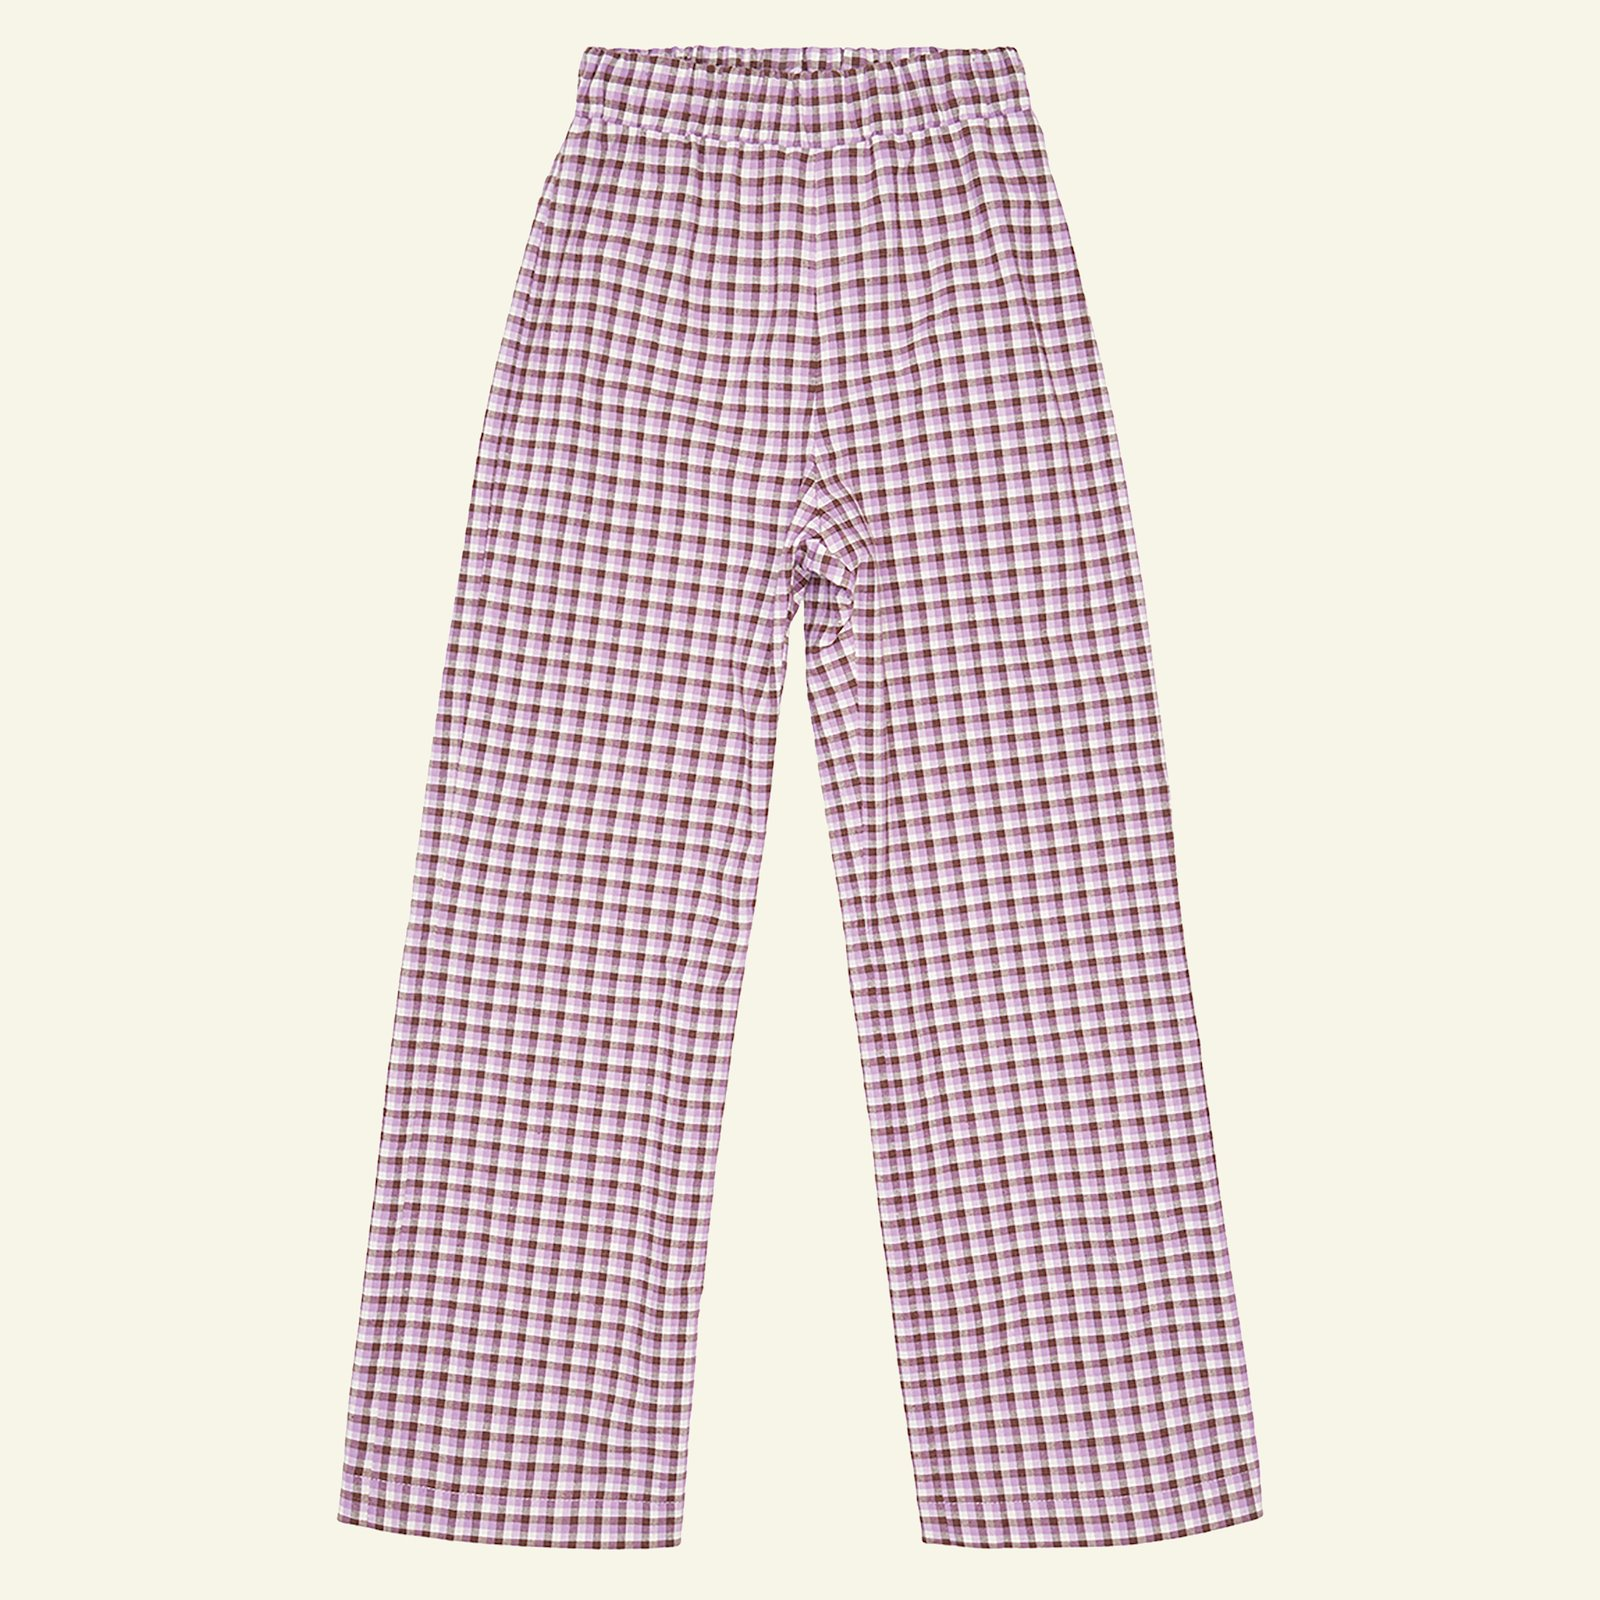 High waist and wide lege trouser, 122/7y p60034_501795_sskit